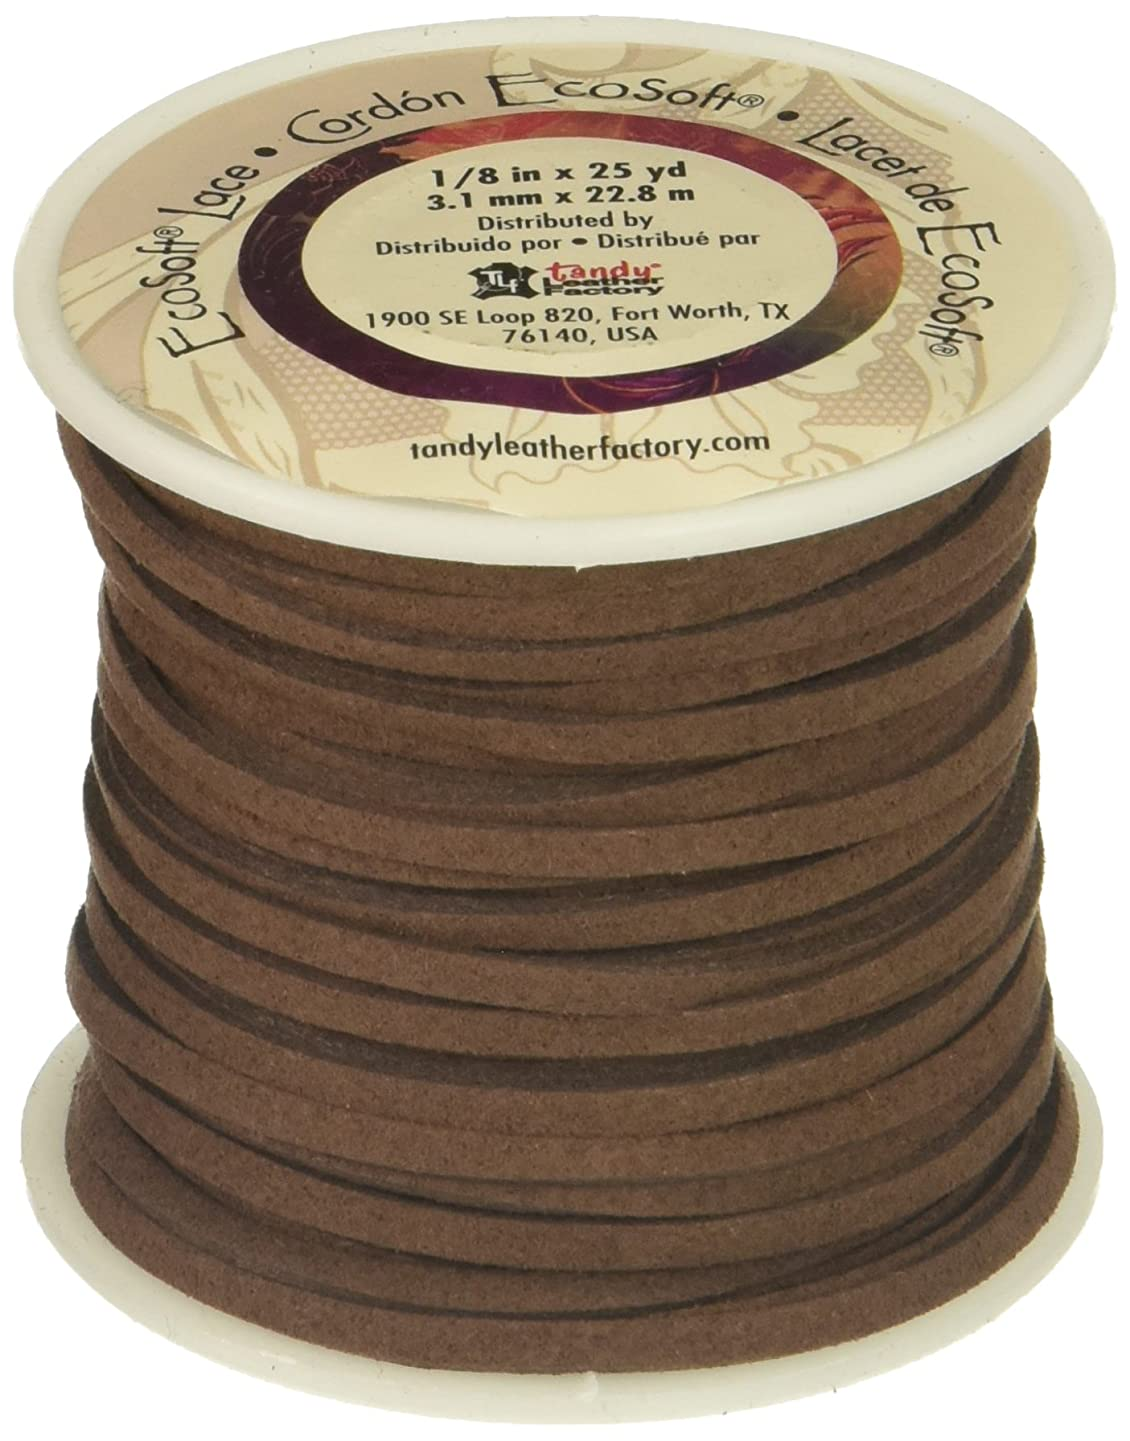 Leather Factory Ecosoft Lace Spool Dark Brown, 1/8